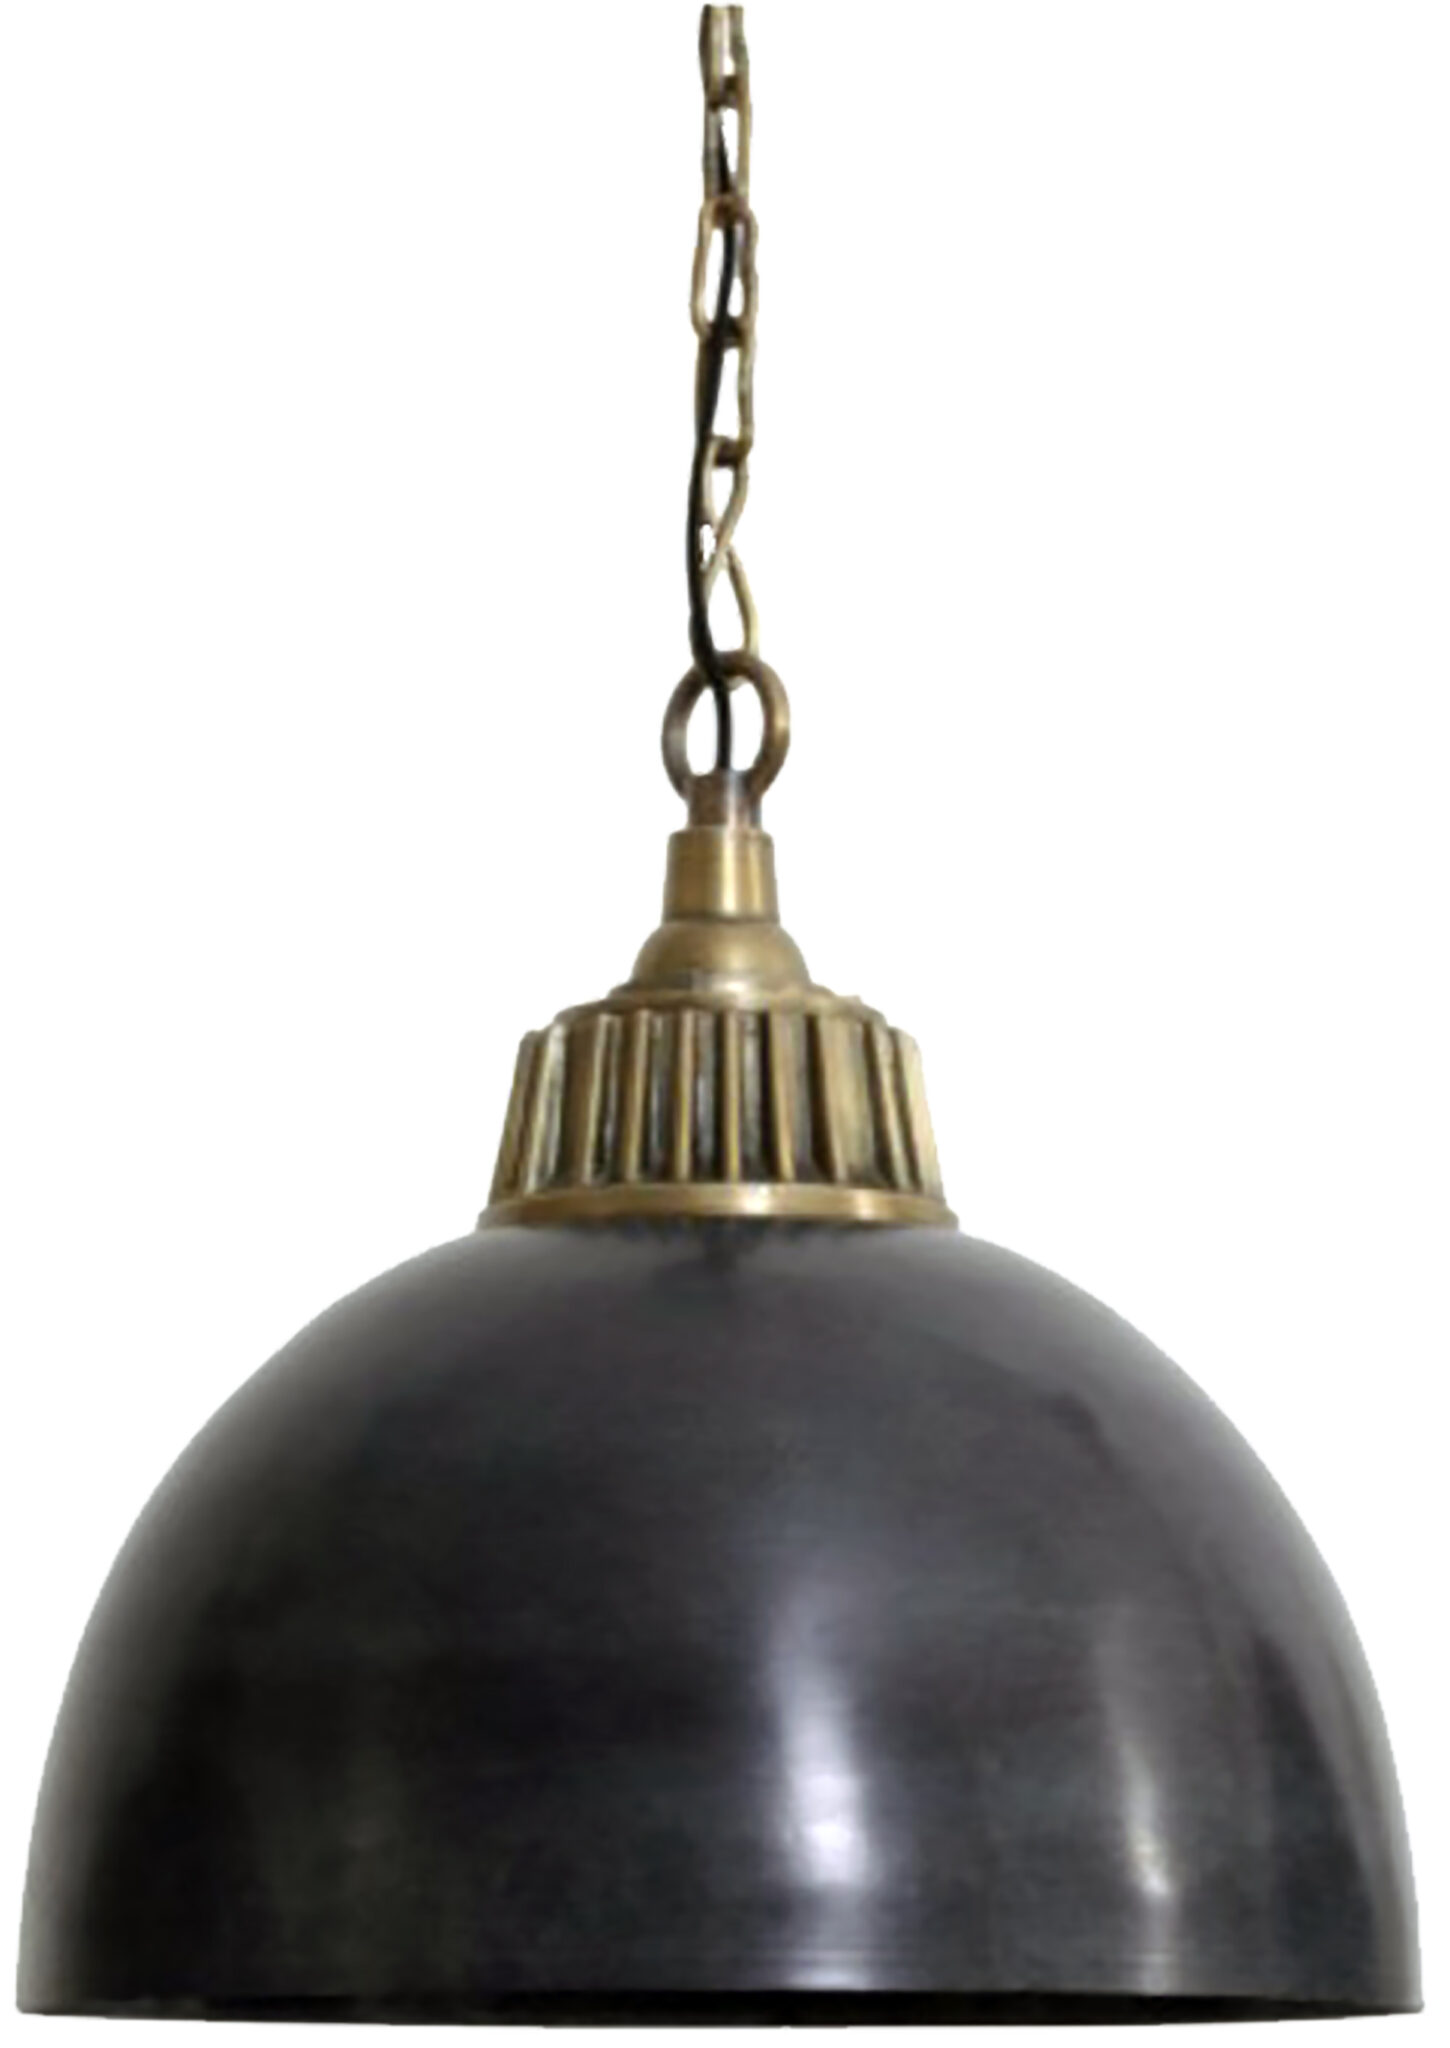 borg antique lampe